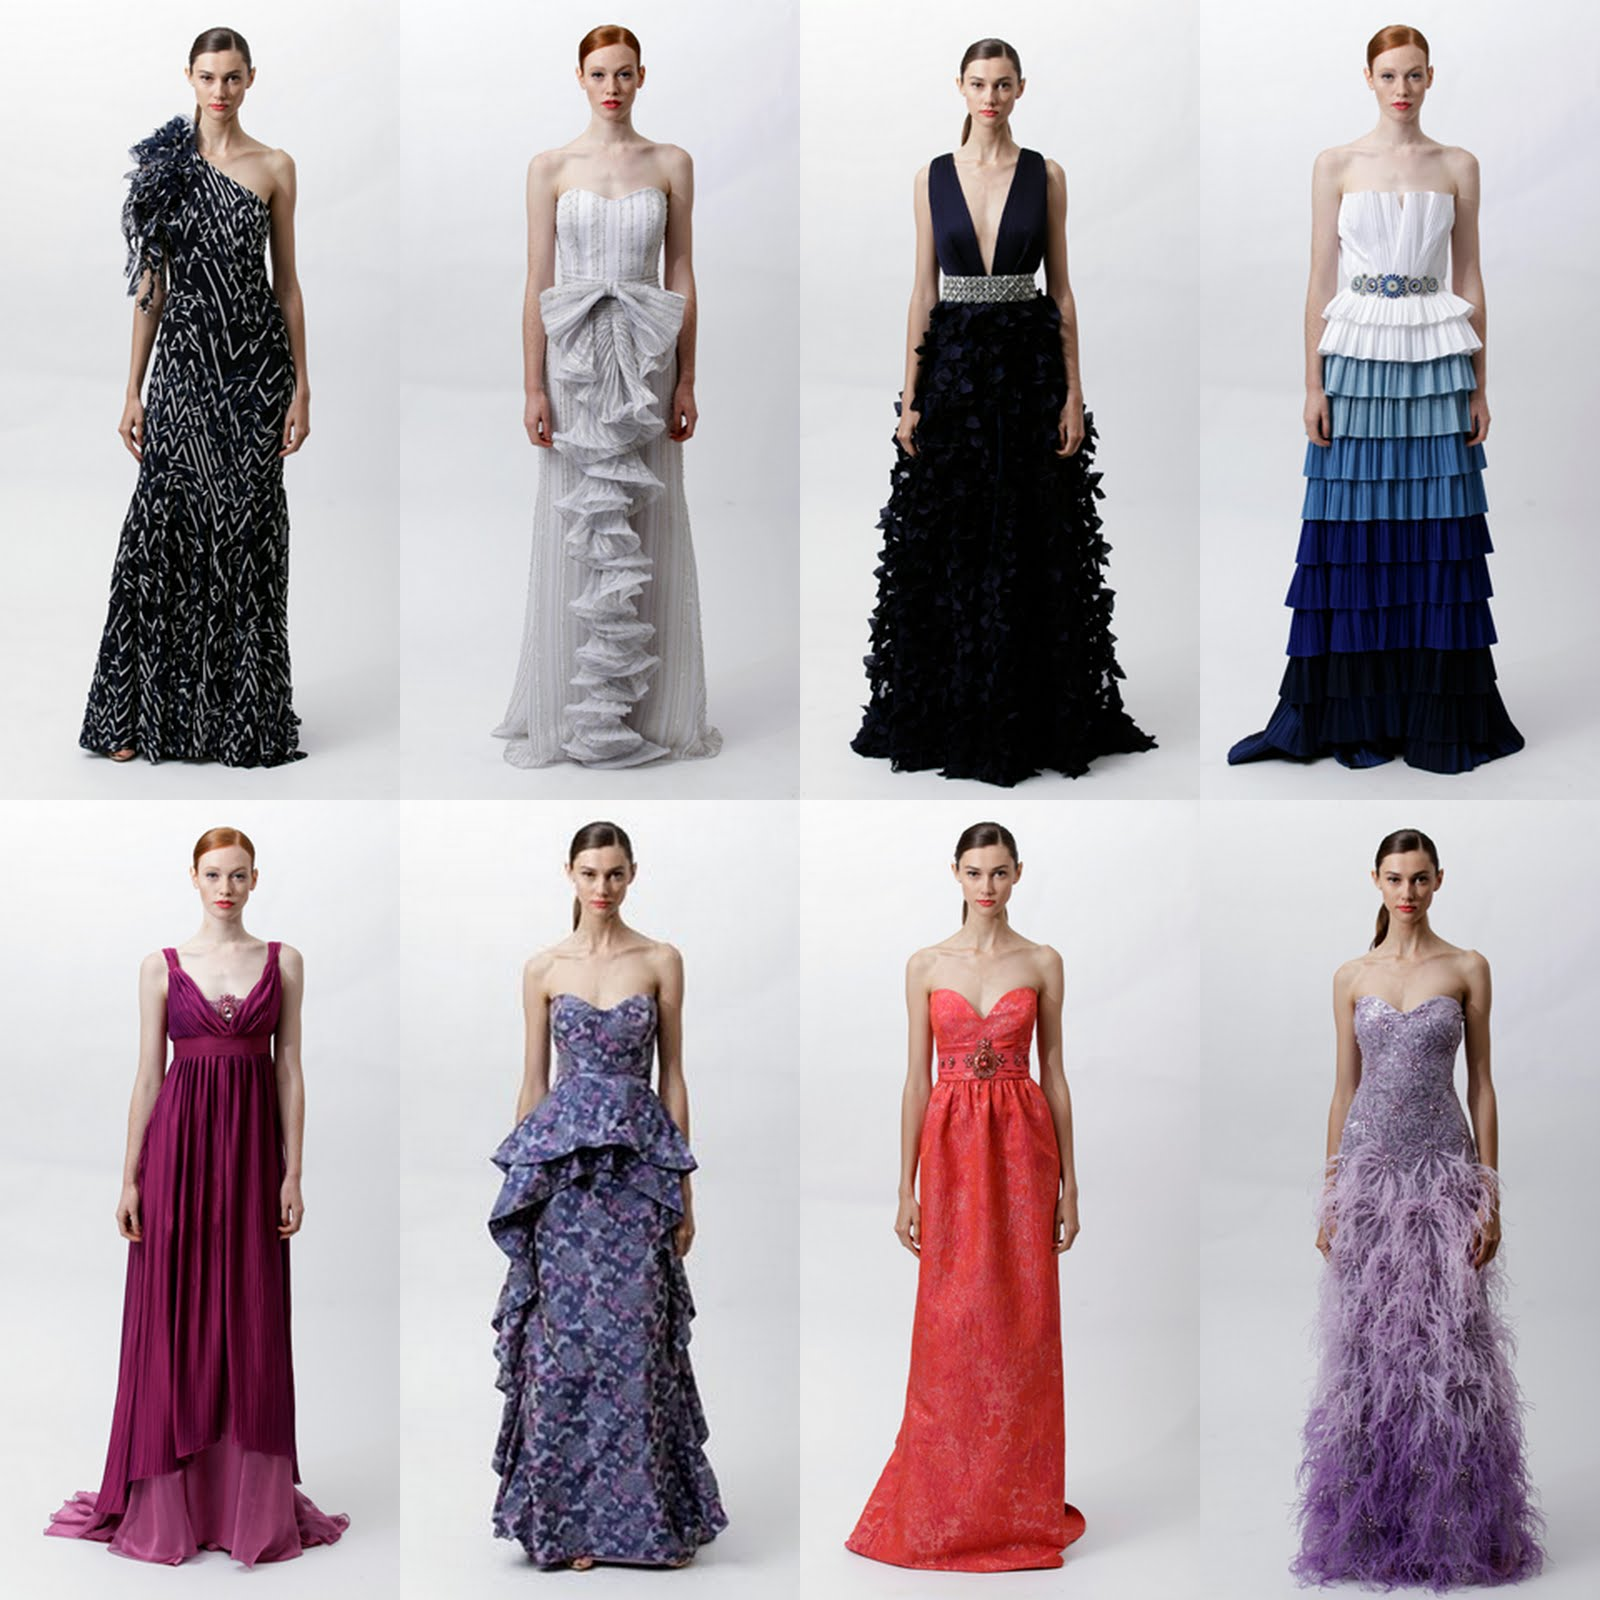 Edgars dresses images